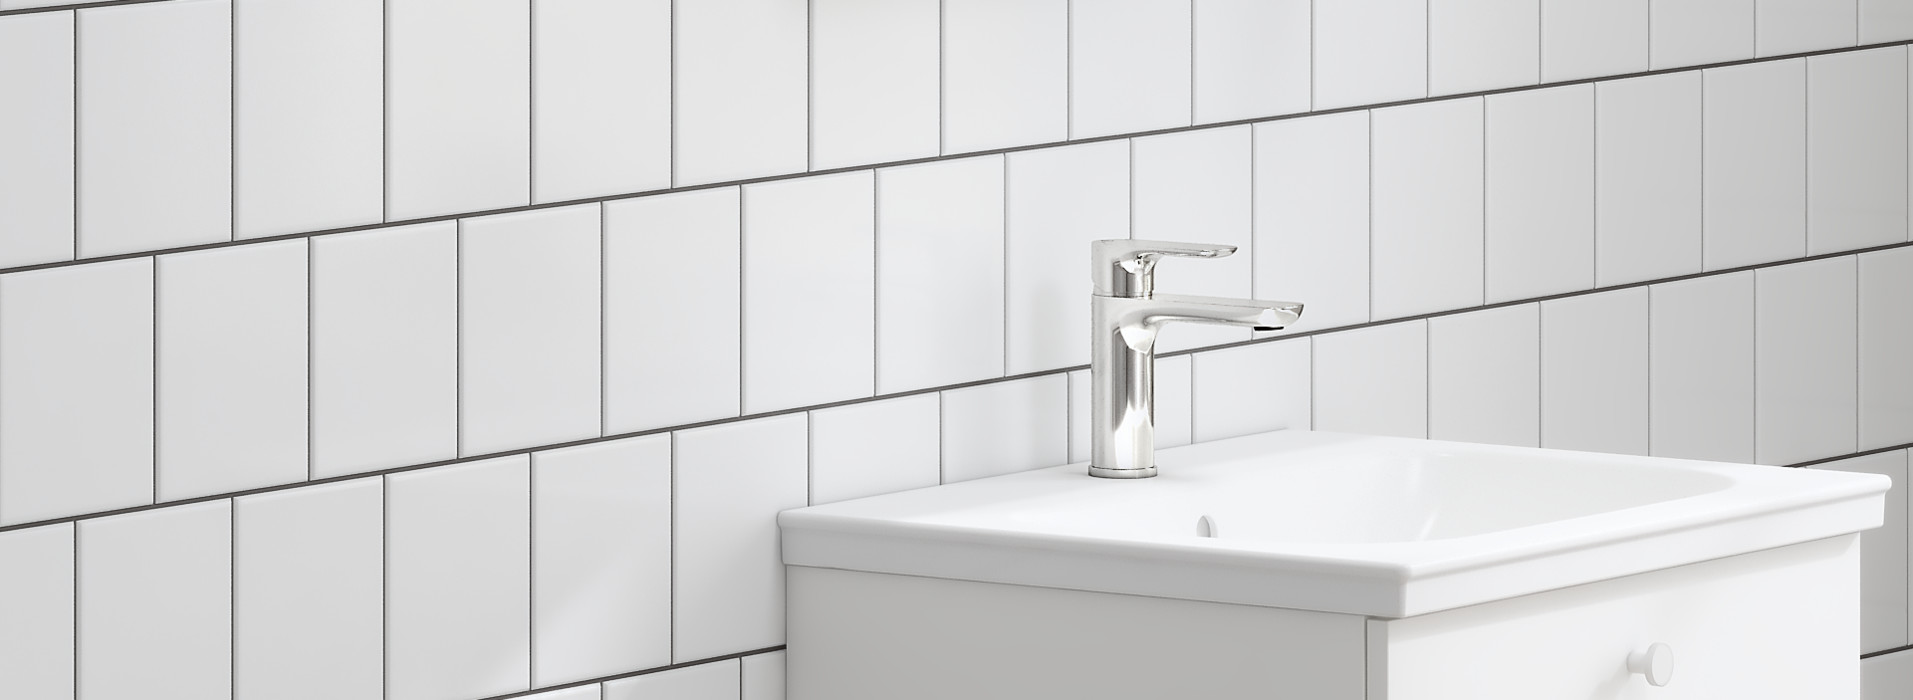 Bathroom collection - Artic, Gustavsberg